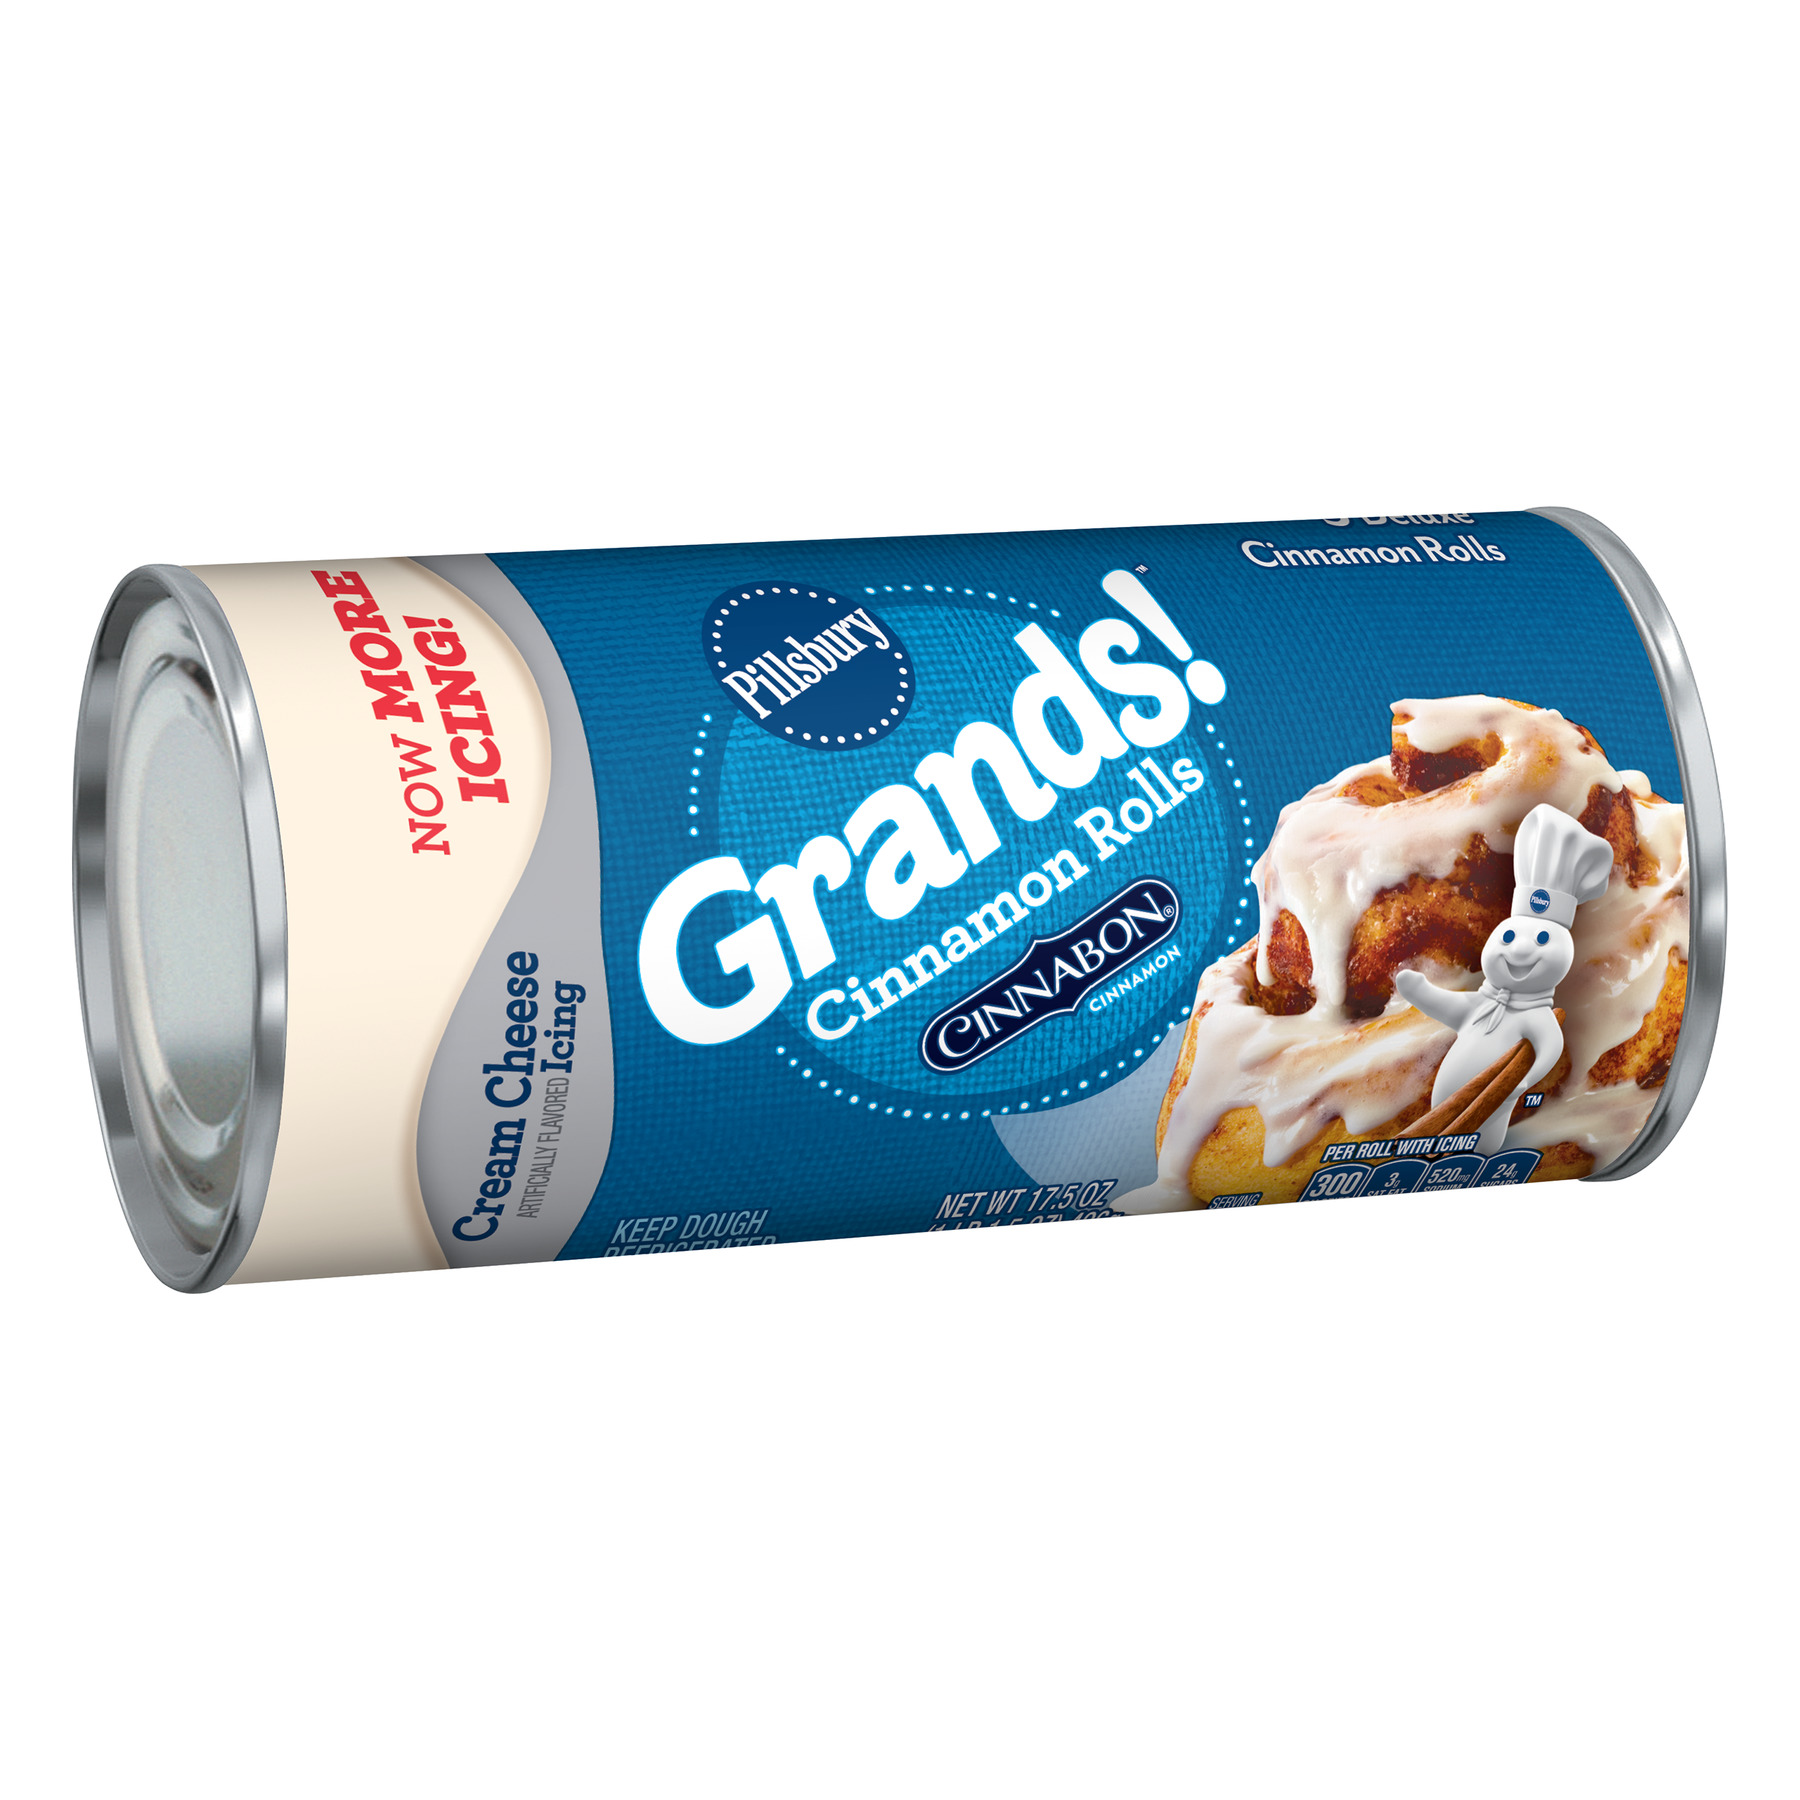 Pillsbury Grands! Cinnamon Rolls With Cream Cheese Icing 5 Ct 17.5 oz